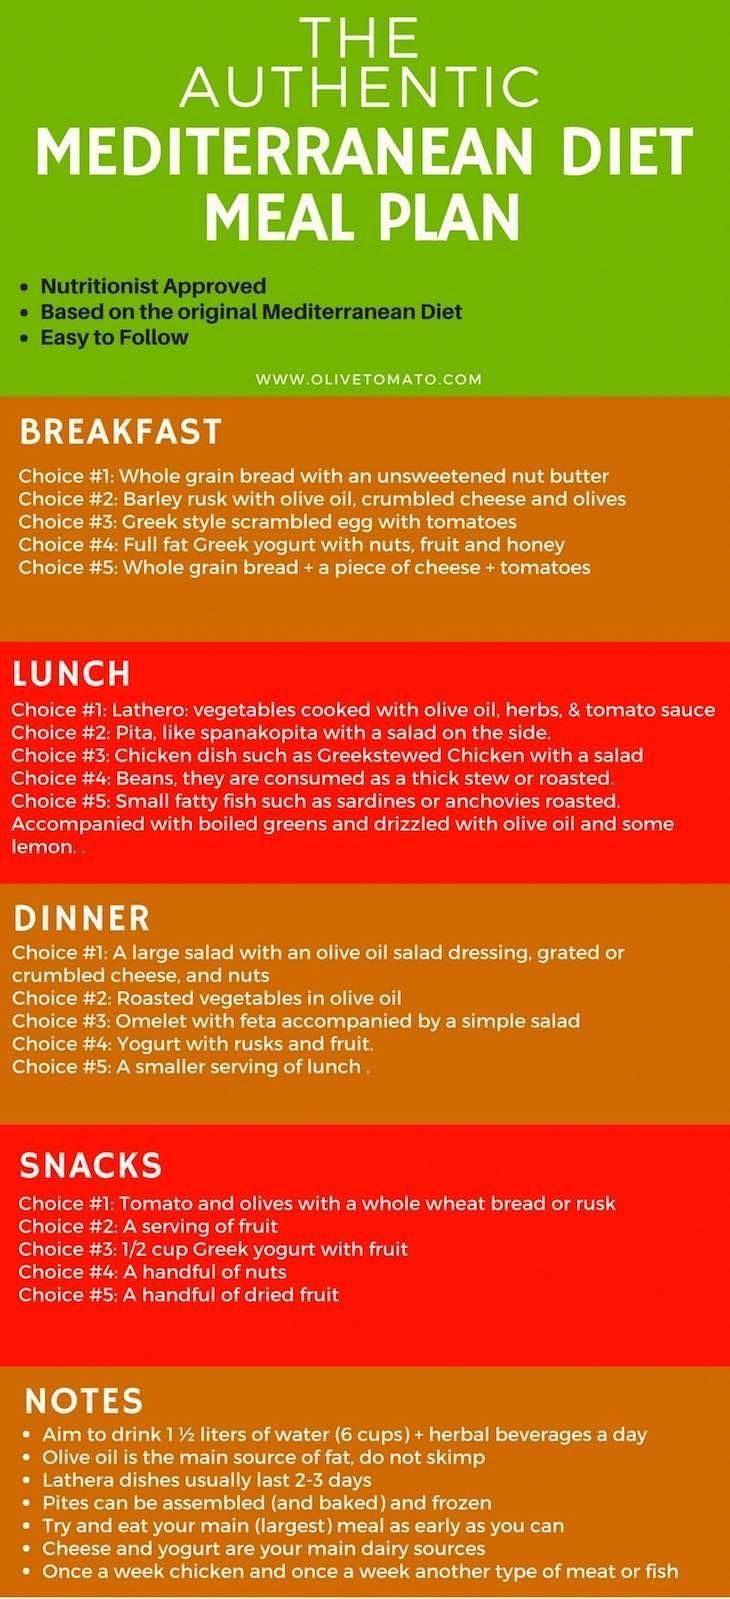 The Authentic Mediterranean Diet Meal Plan And Menu Olive Tomato Mediterranean Diet Meal Plan Diet Meal Plans Mediterranean Diet Menu